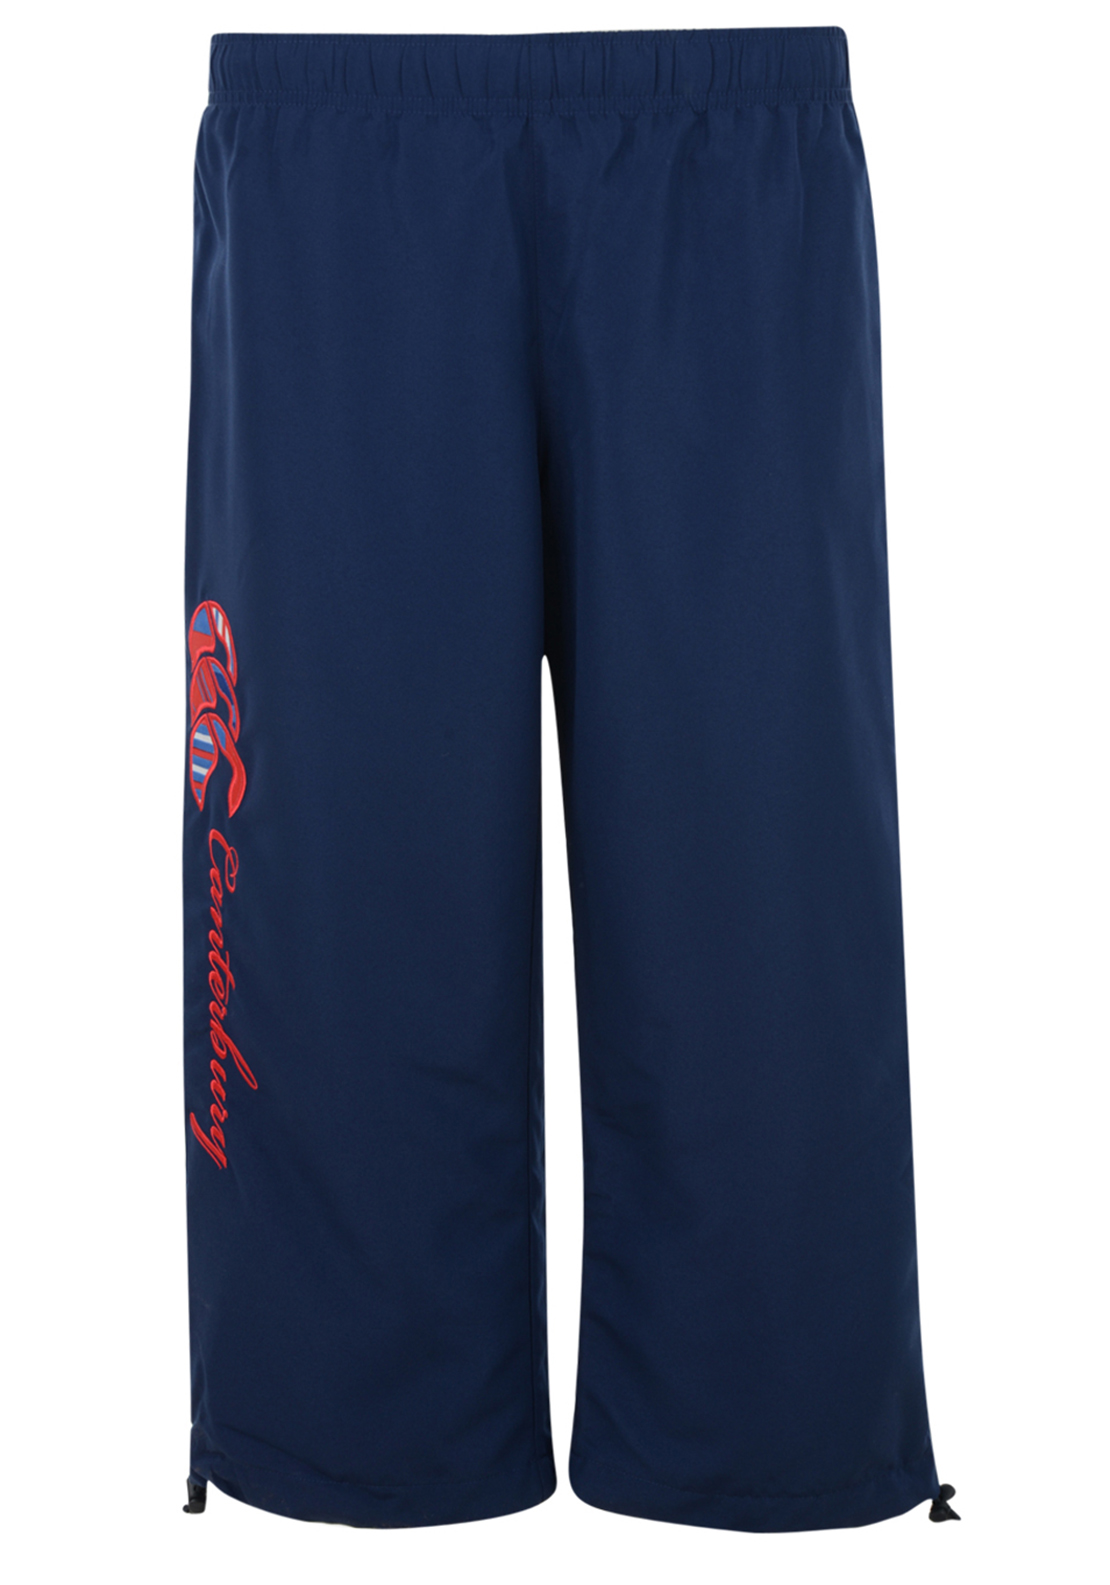 Canterbury Womens Uglies 3/4 Pant, Soft Navy